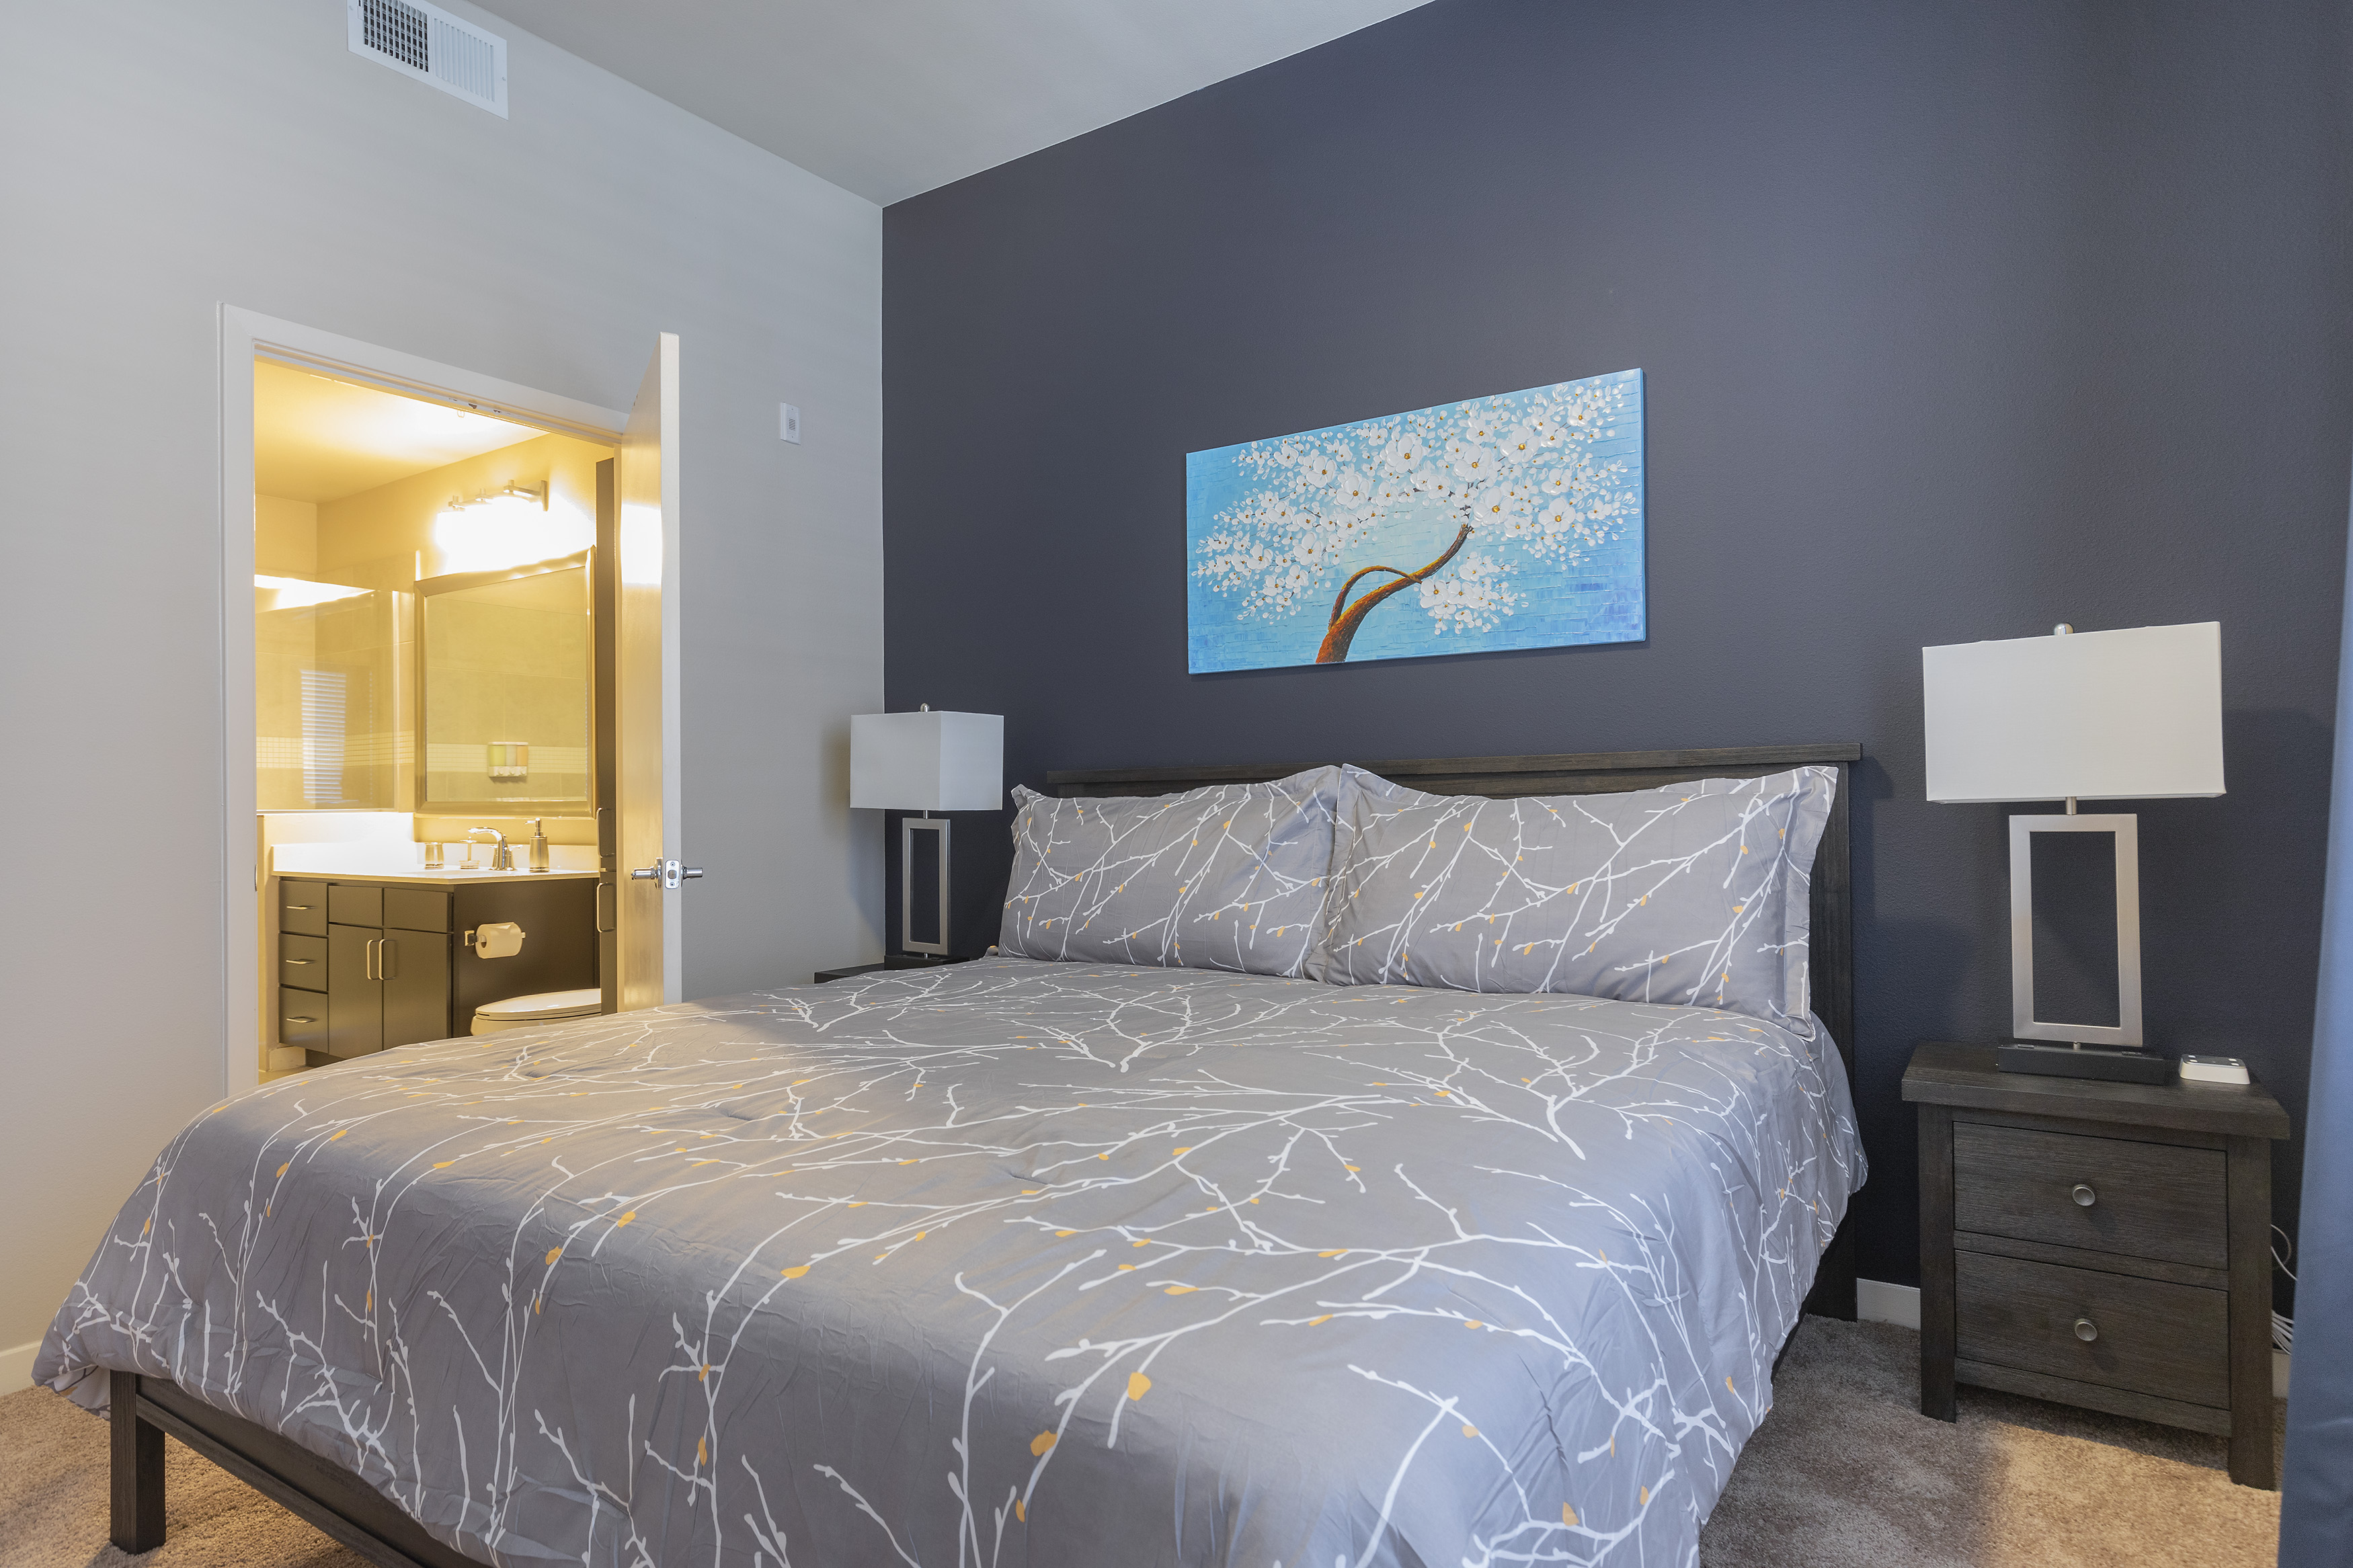 Apartment LUXURIOUS KING SIZED BED MED CENTER FULLY EQUIPPED CONDO photo 21440874